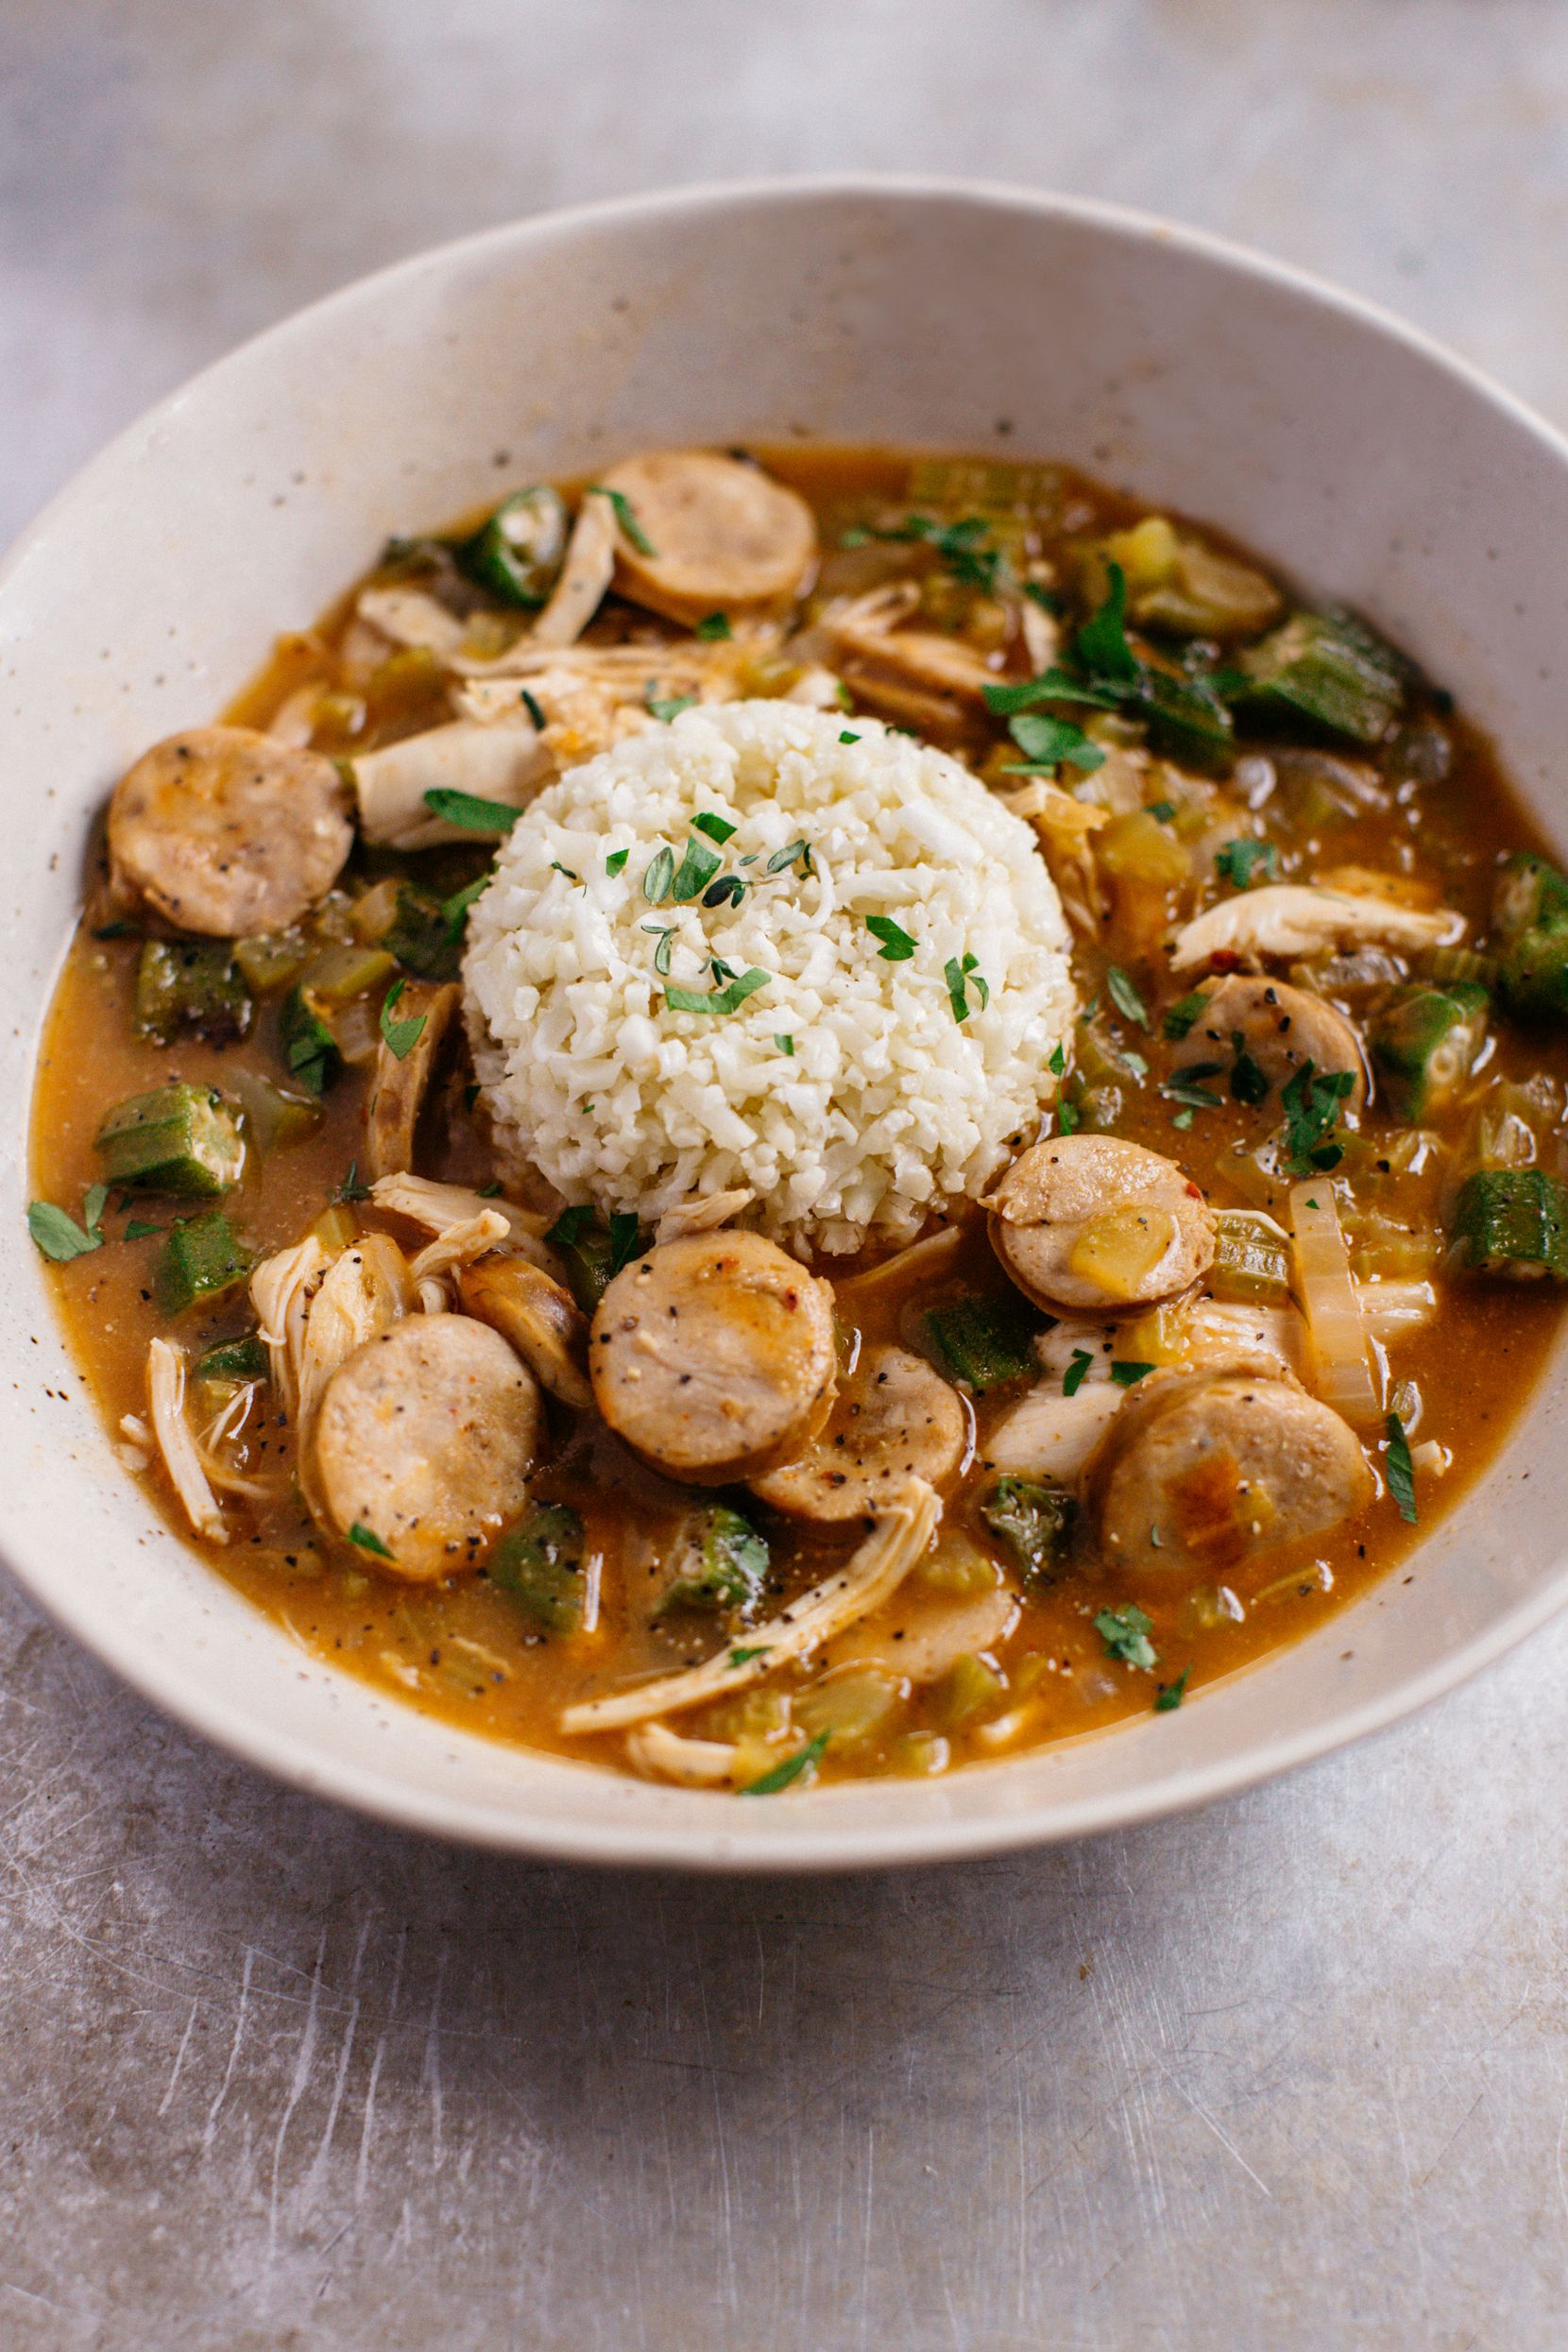 """Chicken and Sausage Gumbo from """"The Defined Dish: Whole30 Endorsed, Healthy and Wholesome Weeknight Recipes"""" by Alex Snodgrass"""